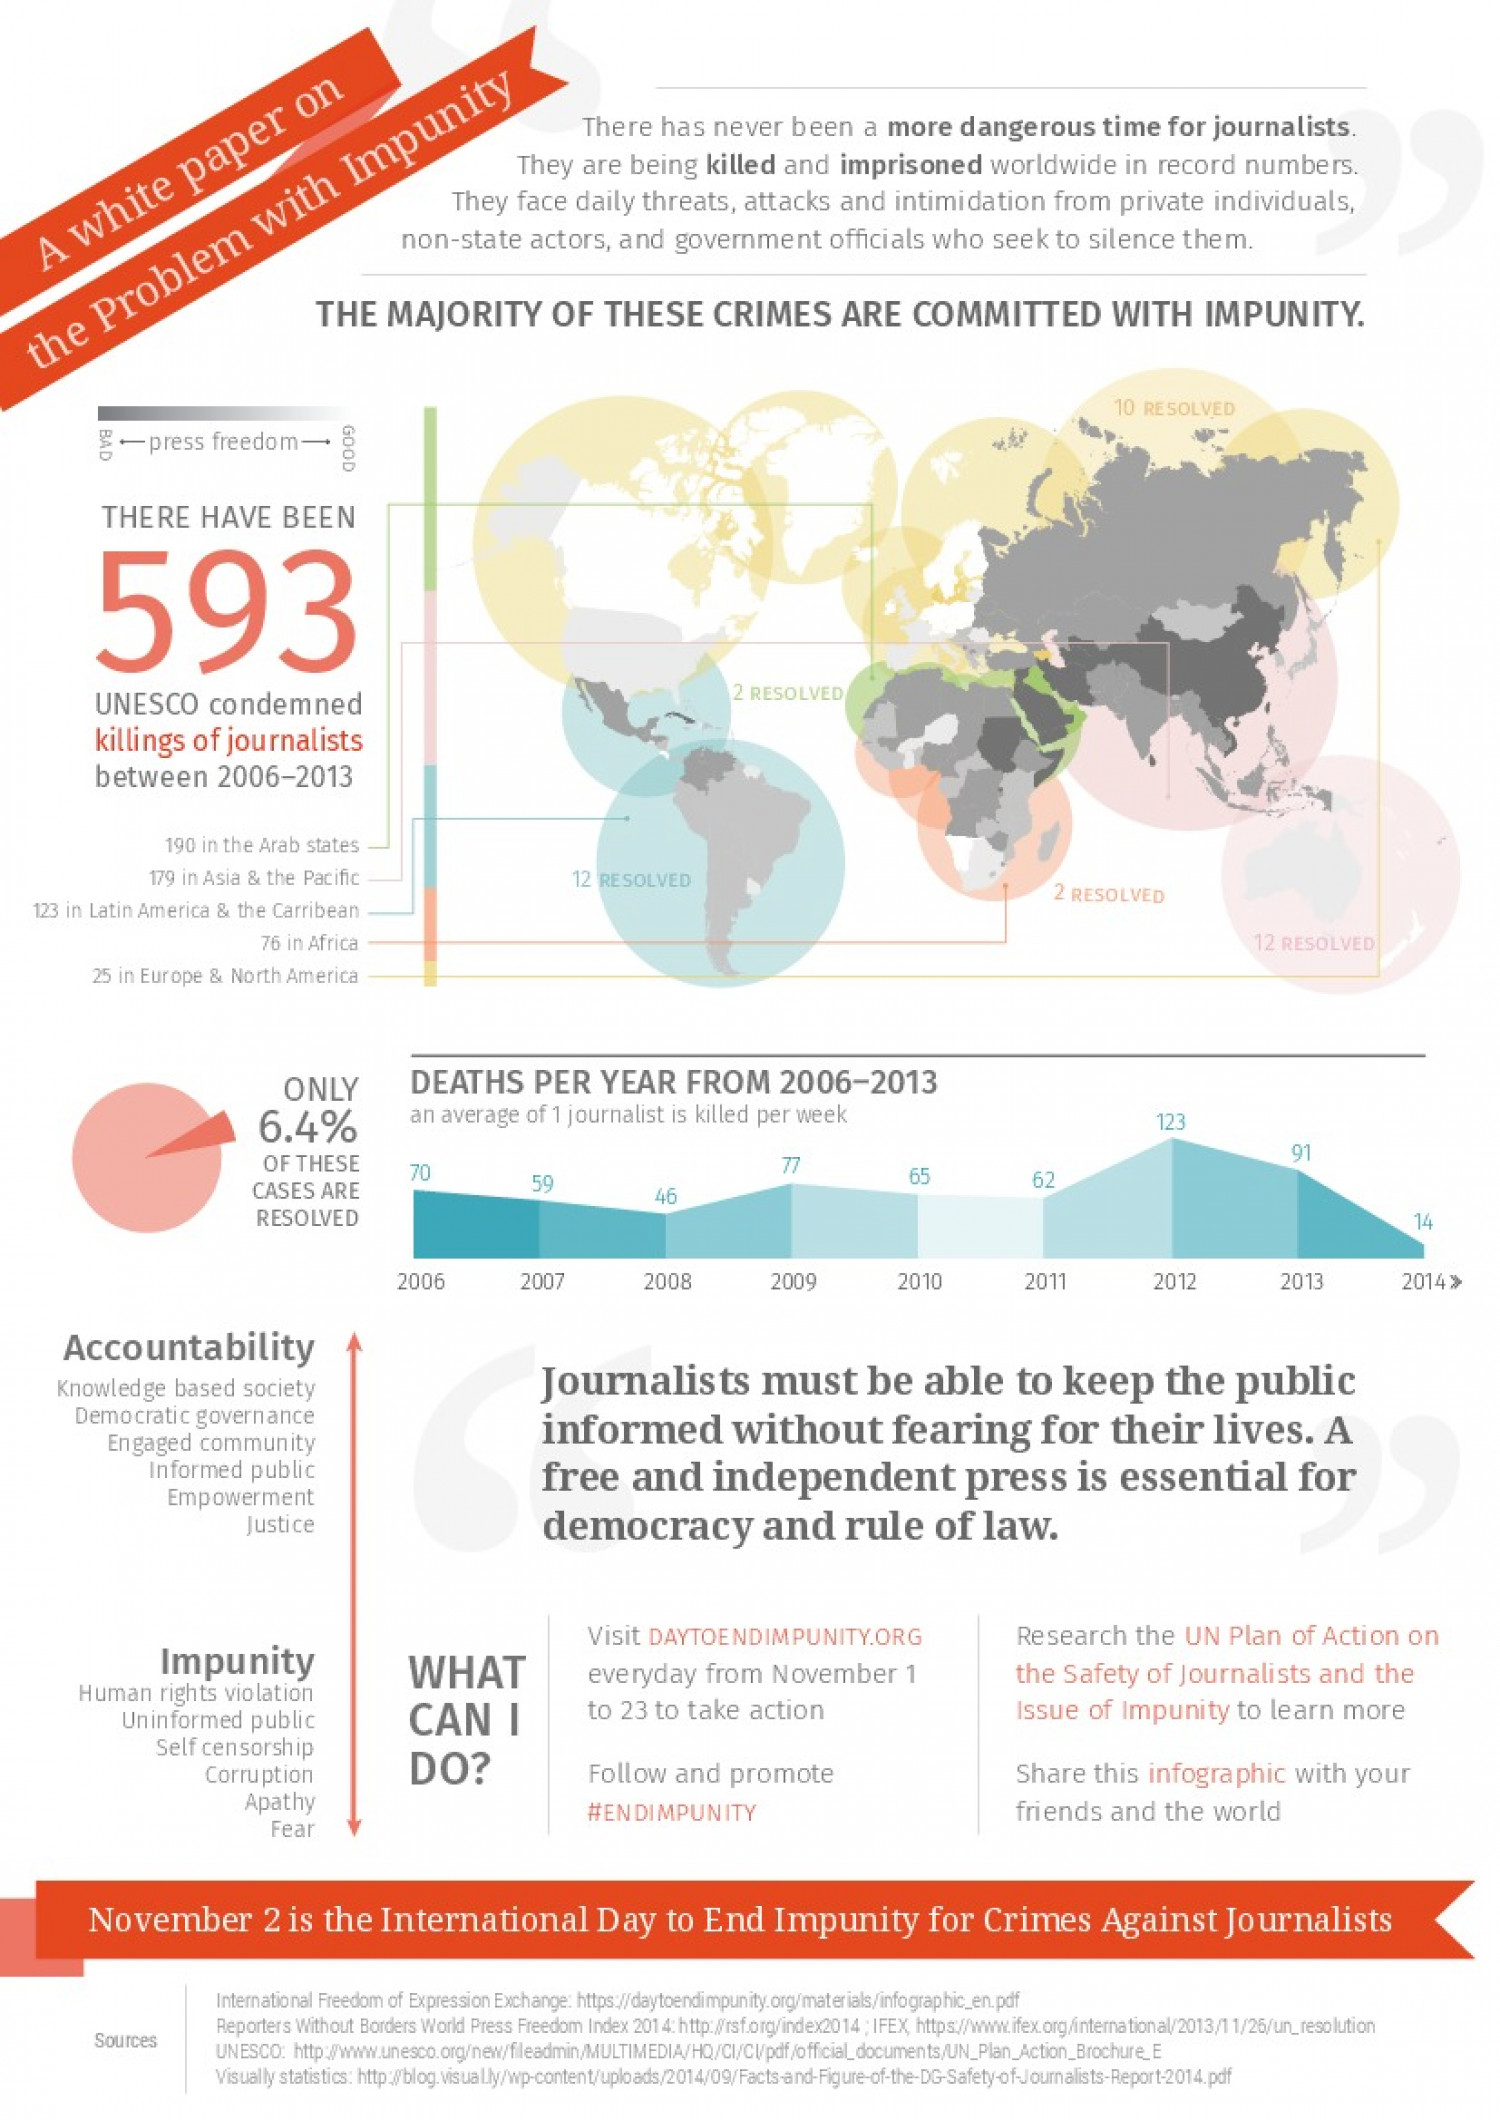 The Issue with Impunity Infographic